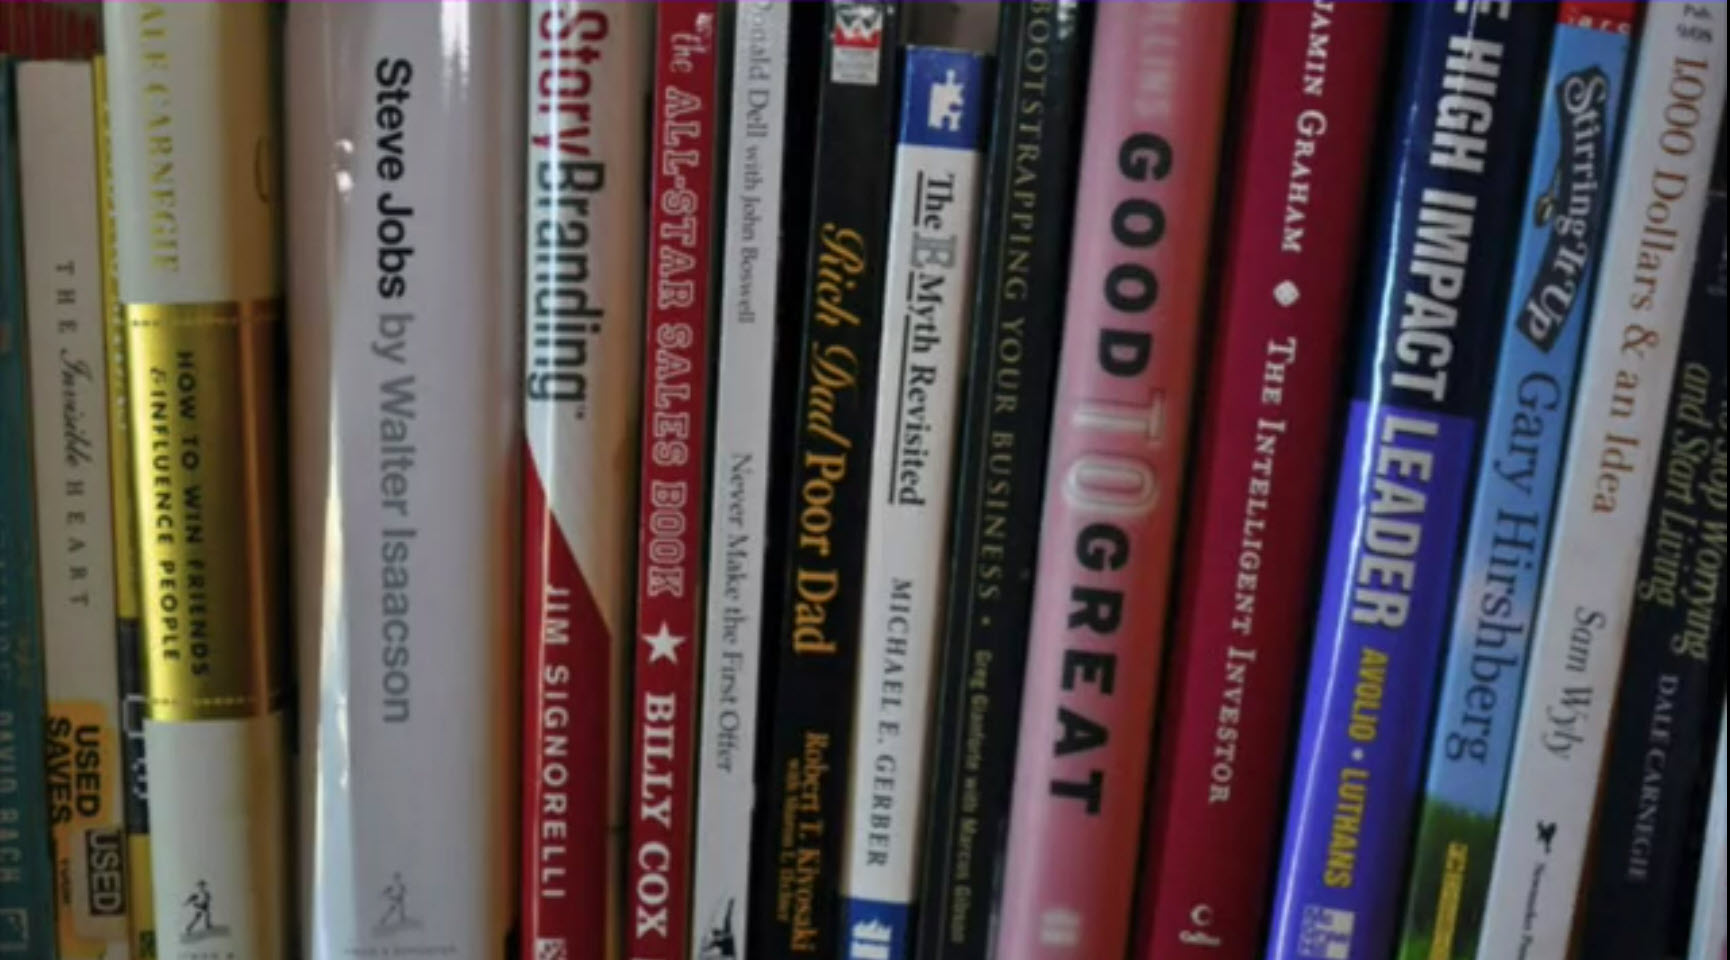 Today's Top Business Books